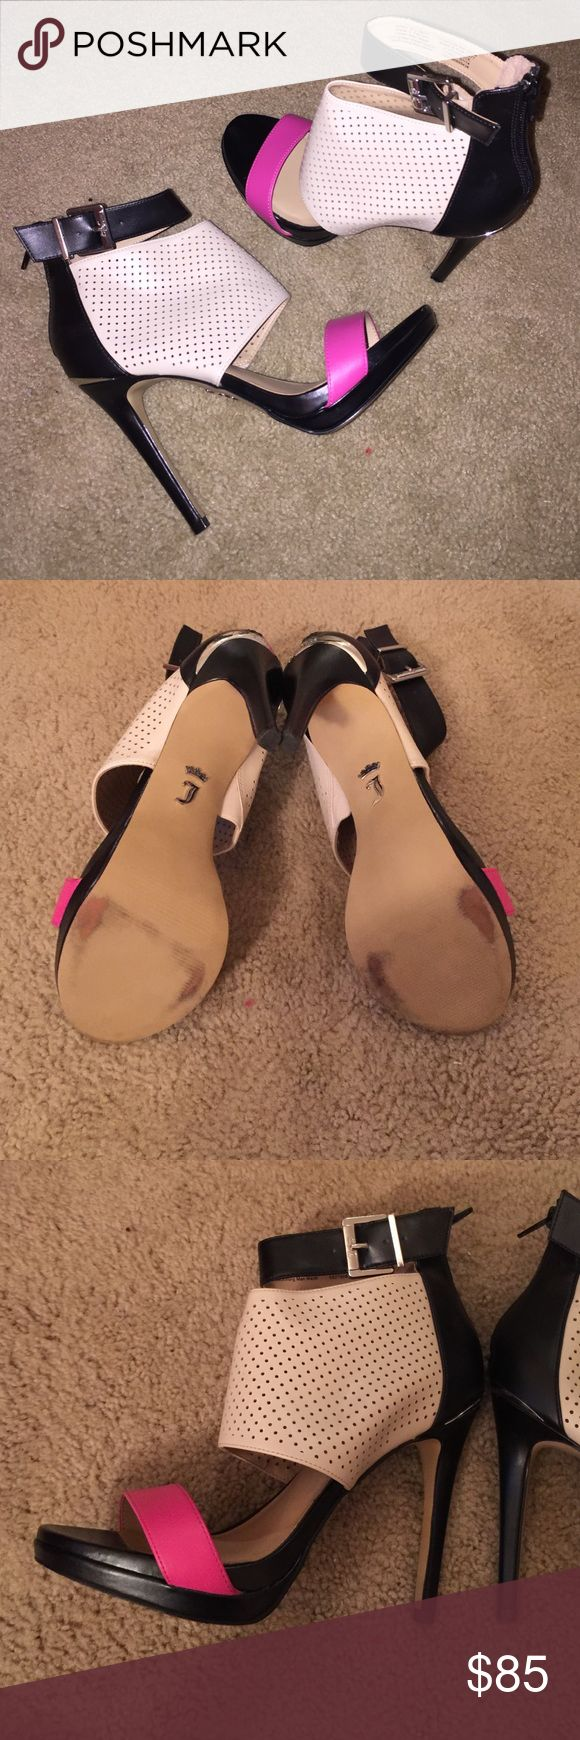 Juicy Couture Heels Size 9 juicy couture heels. Worn once for a wedding. Excellent condition Juicy Couture Shoes Heels